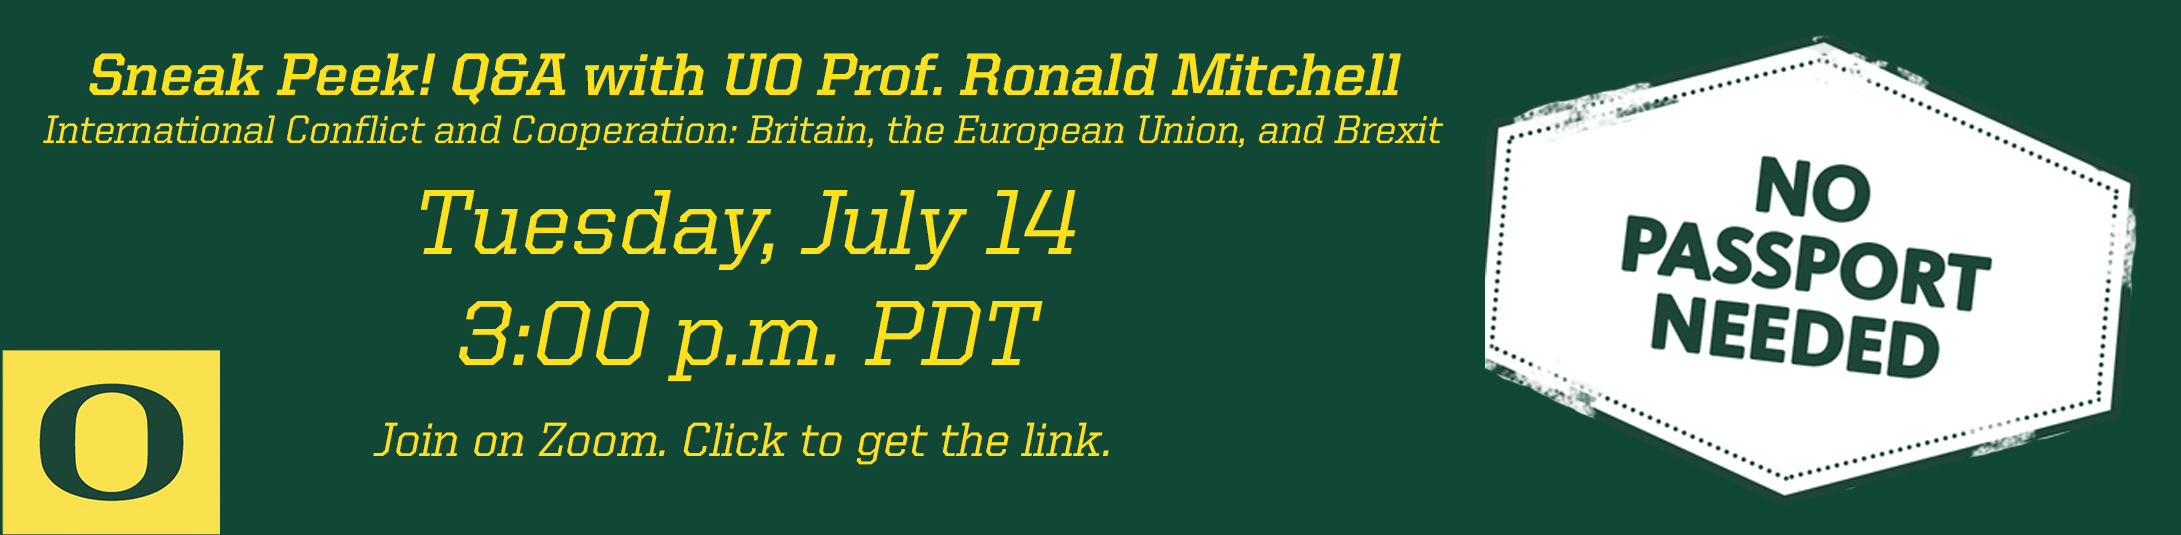 Sneak Peak! Q&A with Professor Mitchell on July 14 at 3 pm. Click the image to get the zoom link